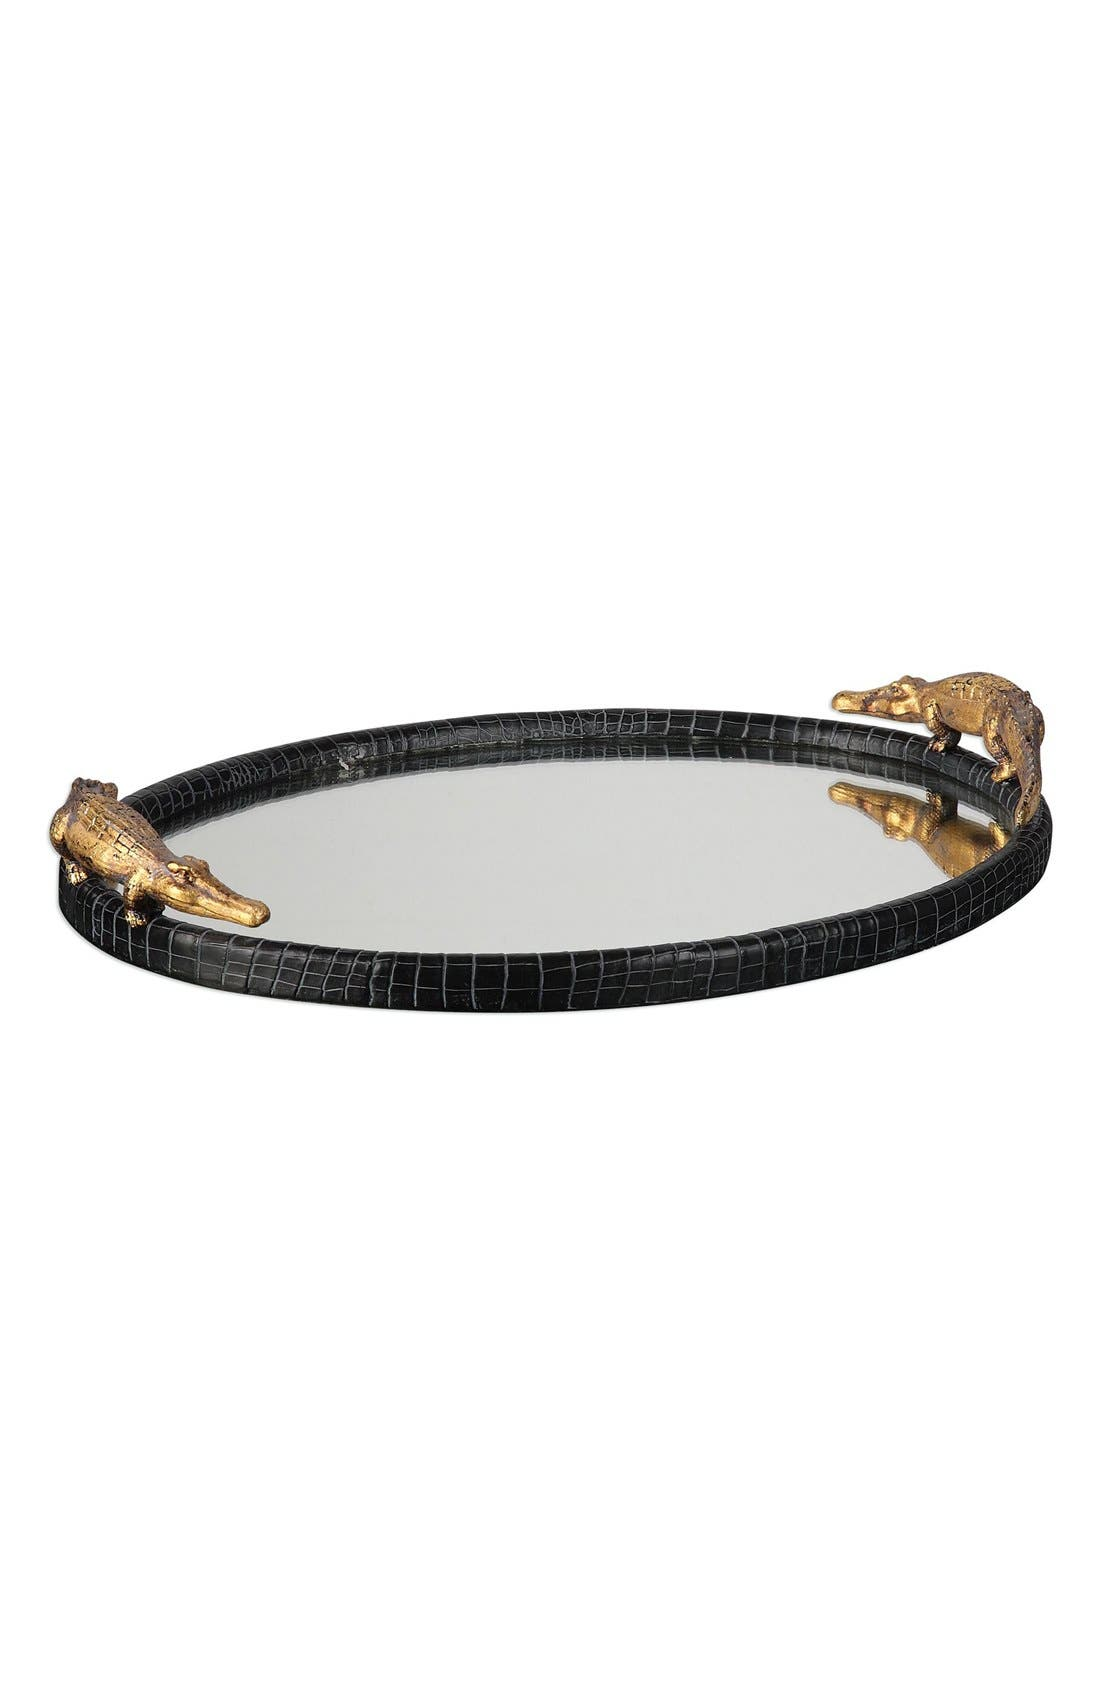 Uttermost 'Alligator' Mirrored Tray